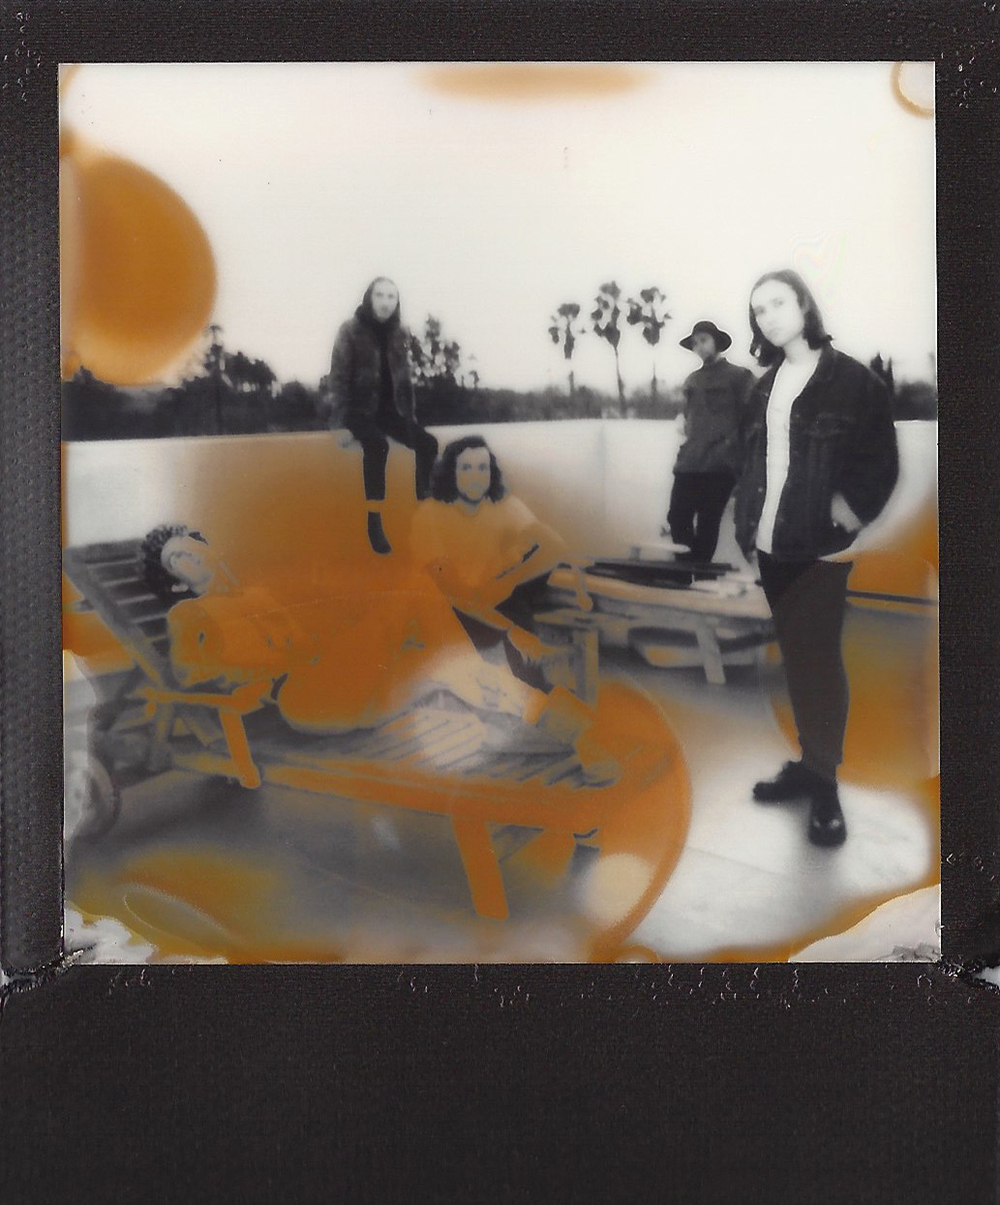 The-NBHD-Polaroid-10-casenruiz.jpg